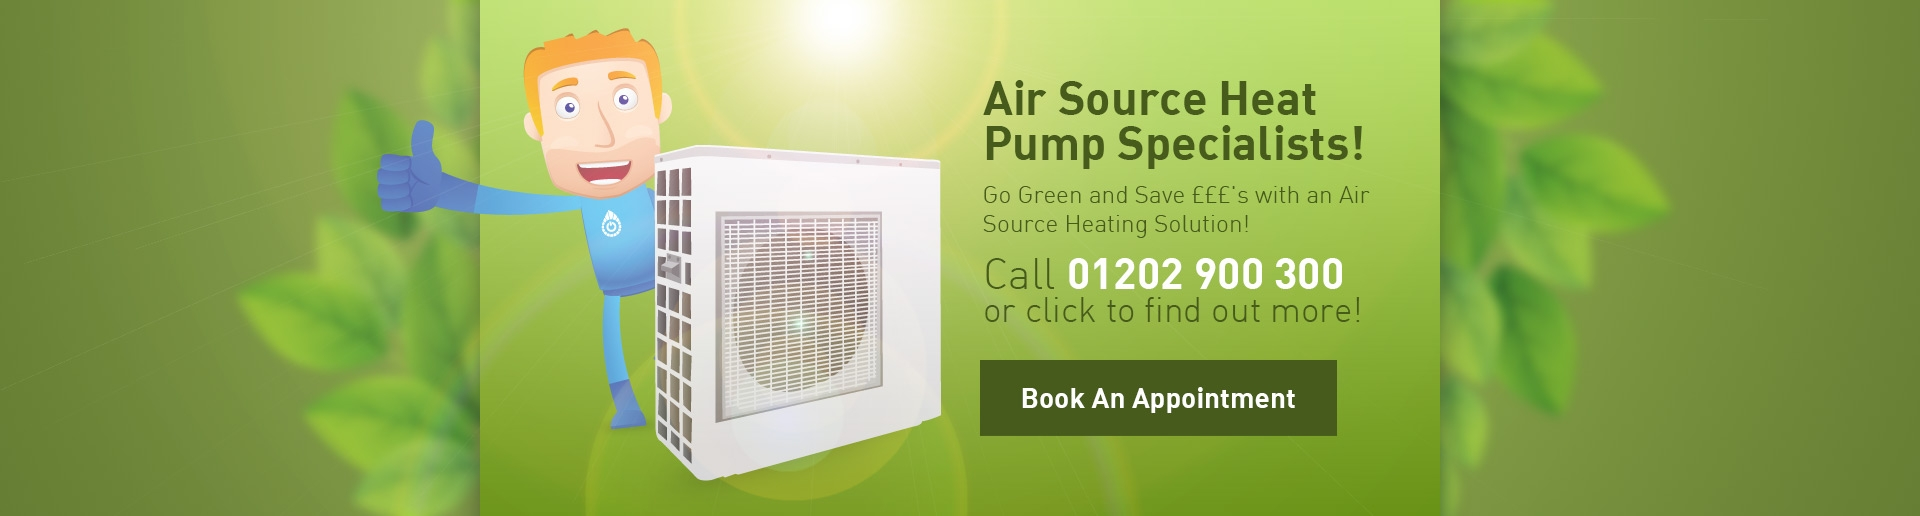 Air Source Heating Pump Installer